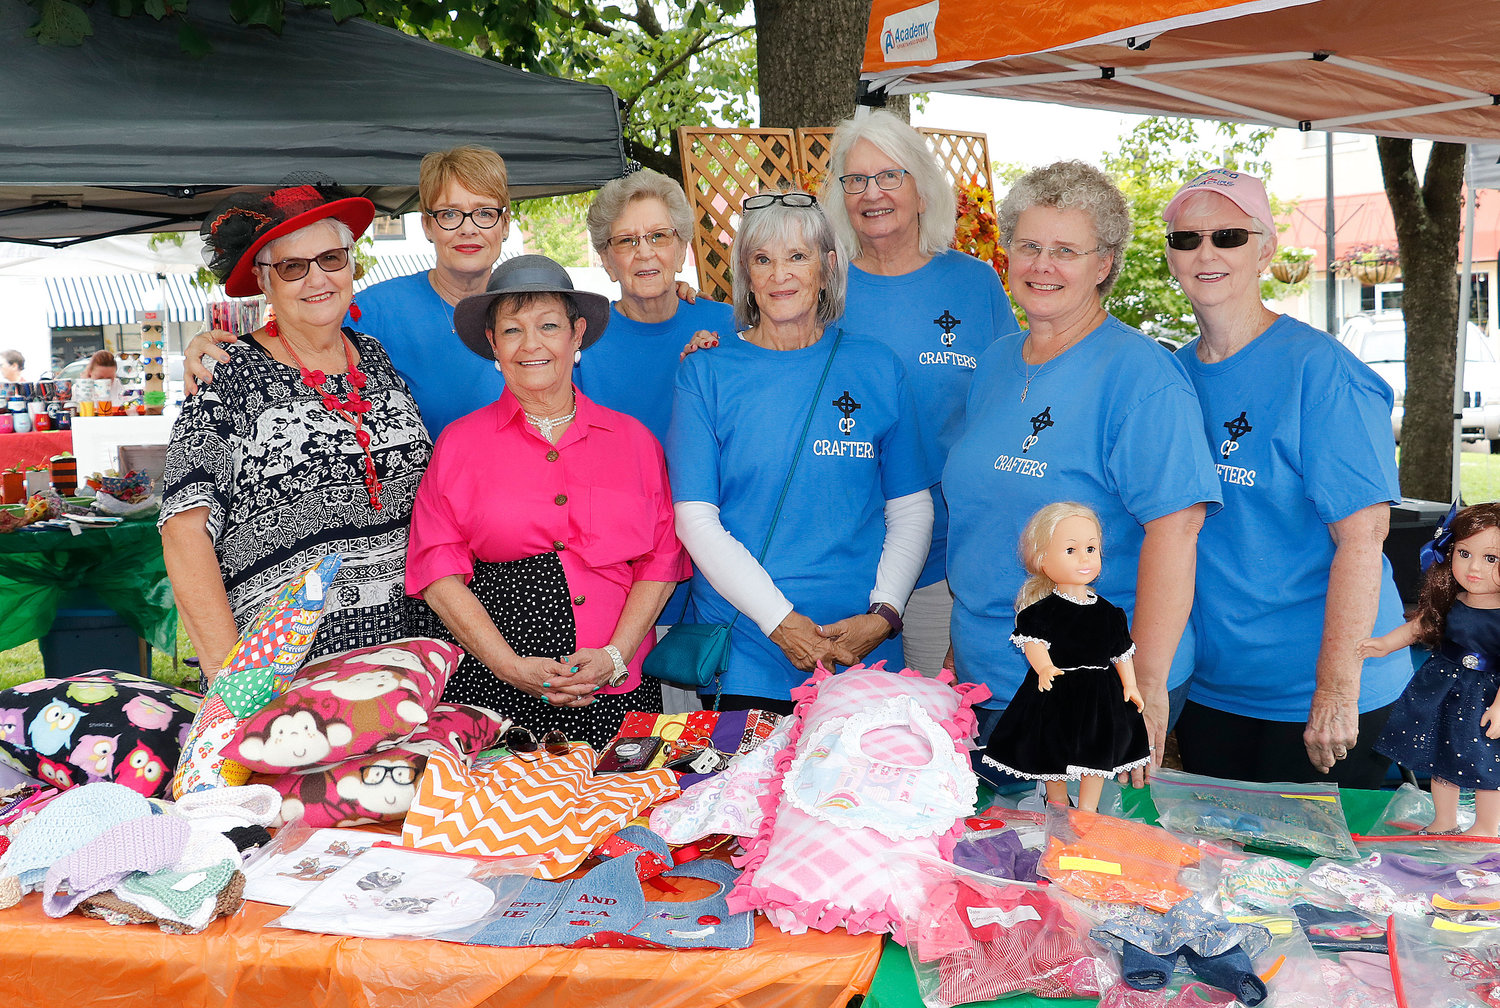 The First Cumberland Presbyterian Church ladies display some of the crafts. Some were also in costume as actors in the Southern Fried Funnies.